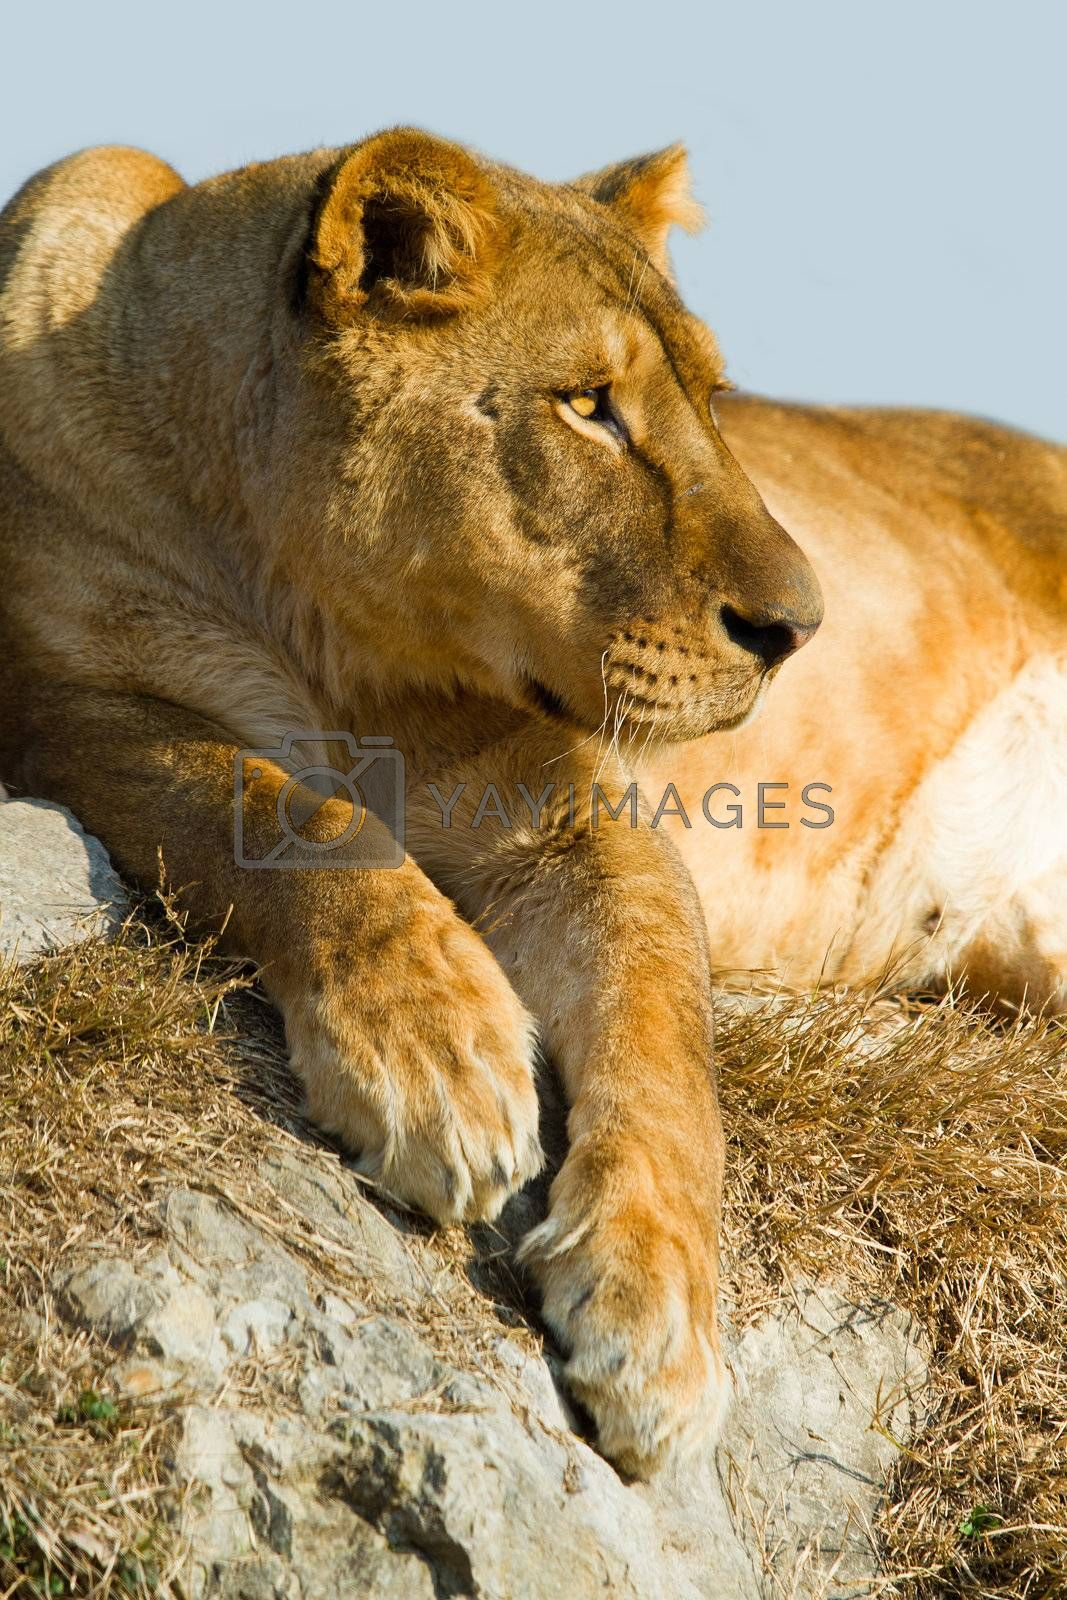 Royalty free image of Lioness  by lsantilli